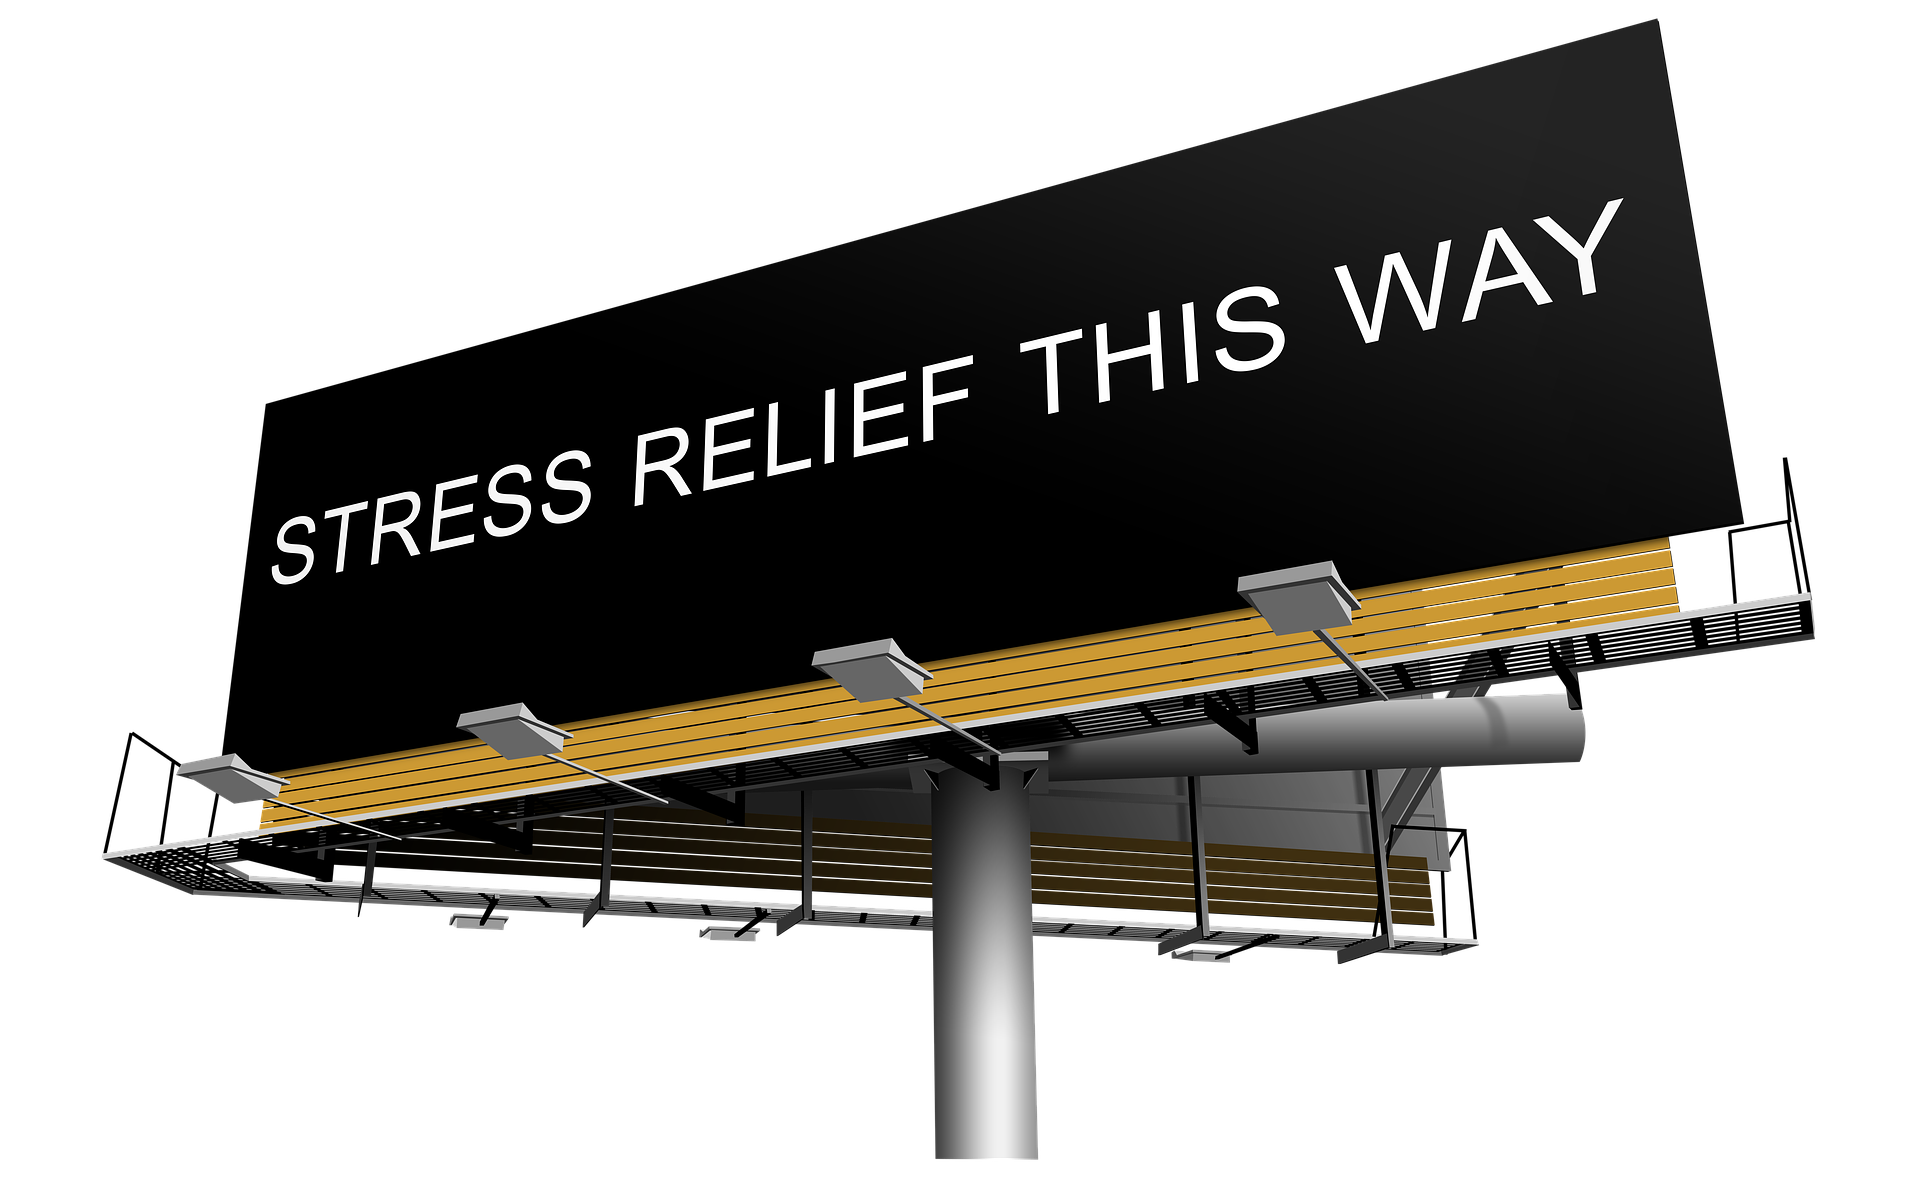 Billboard:Relief Stress This Way